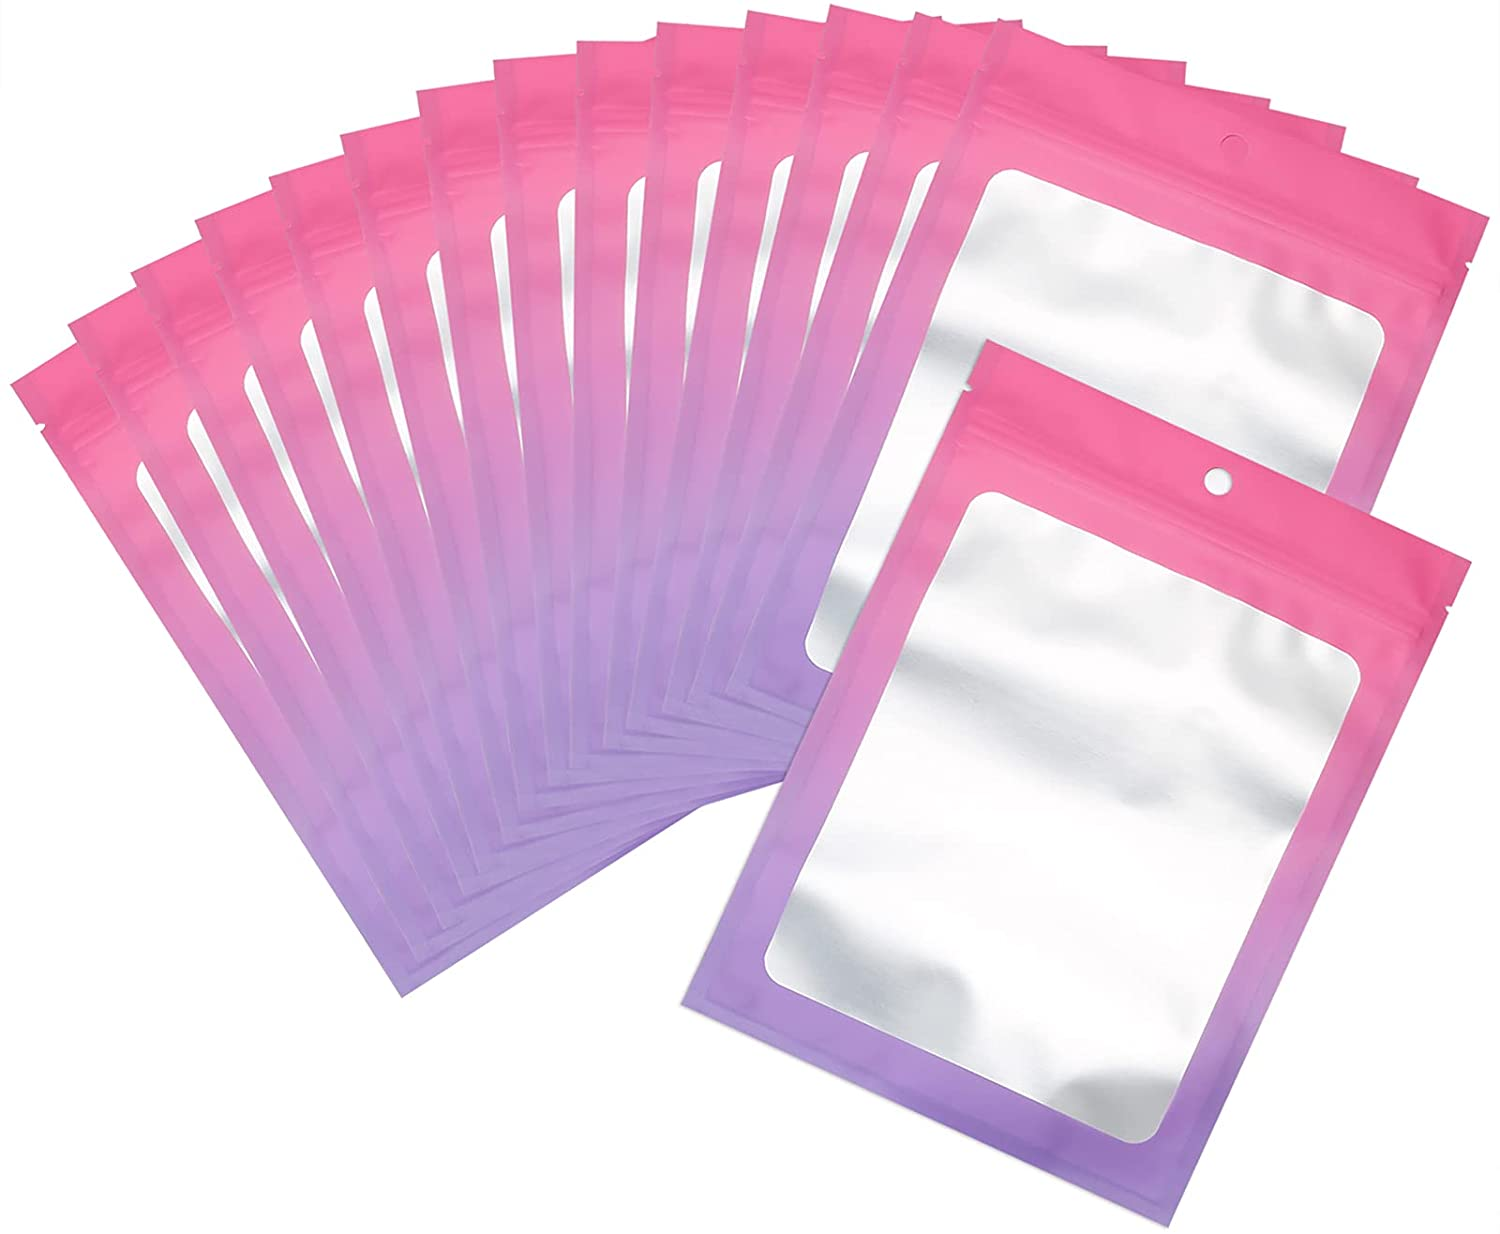 100 Pcs Resealable Mylar Ziplock Food Storage Bags, Gradient Color Smell Proof Bag with Clear Window, Packaging Pouch for Coffee Beans Candy Sample Food (Pink Purple, 2.7 X 3.9 Inch)